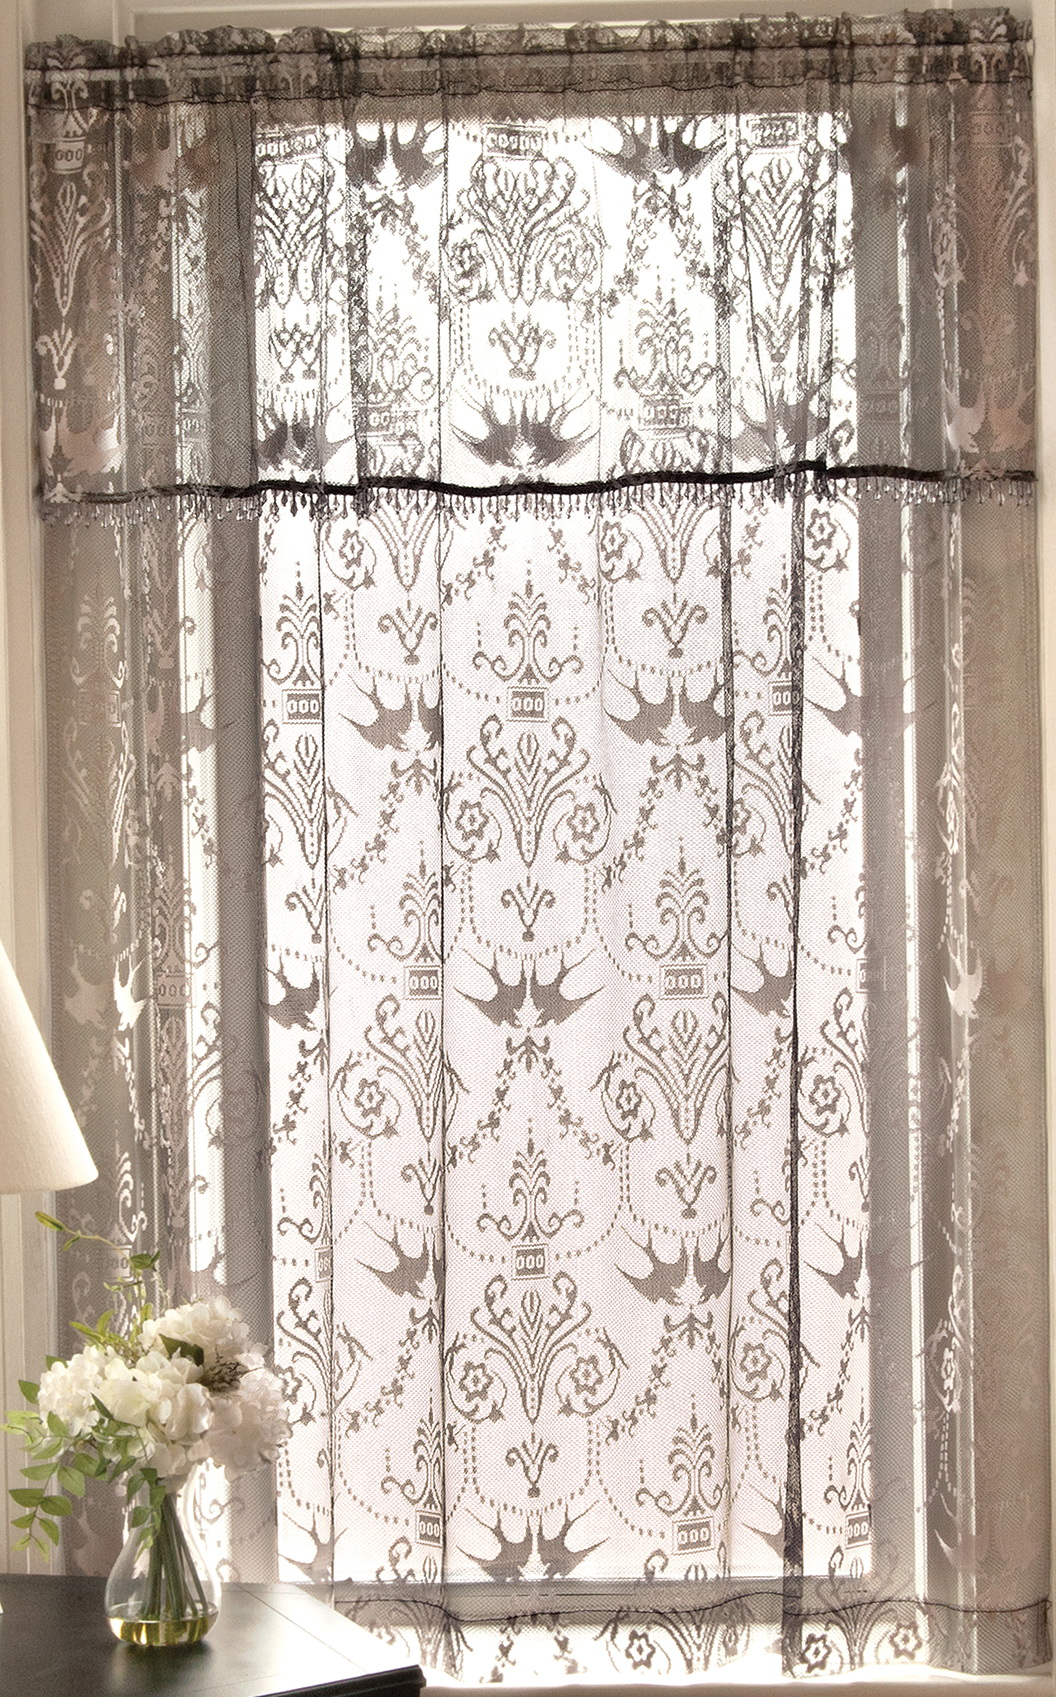 Lace Curtain Irish Or Shanty Irish Home Design Ideas